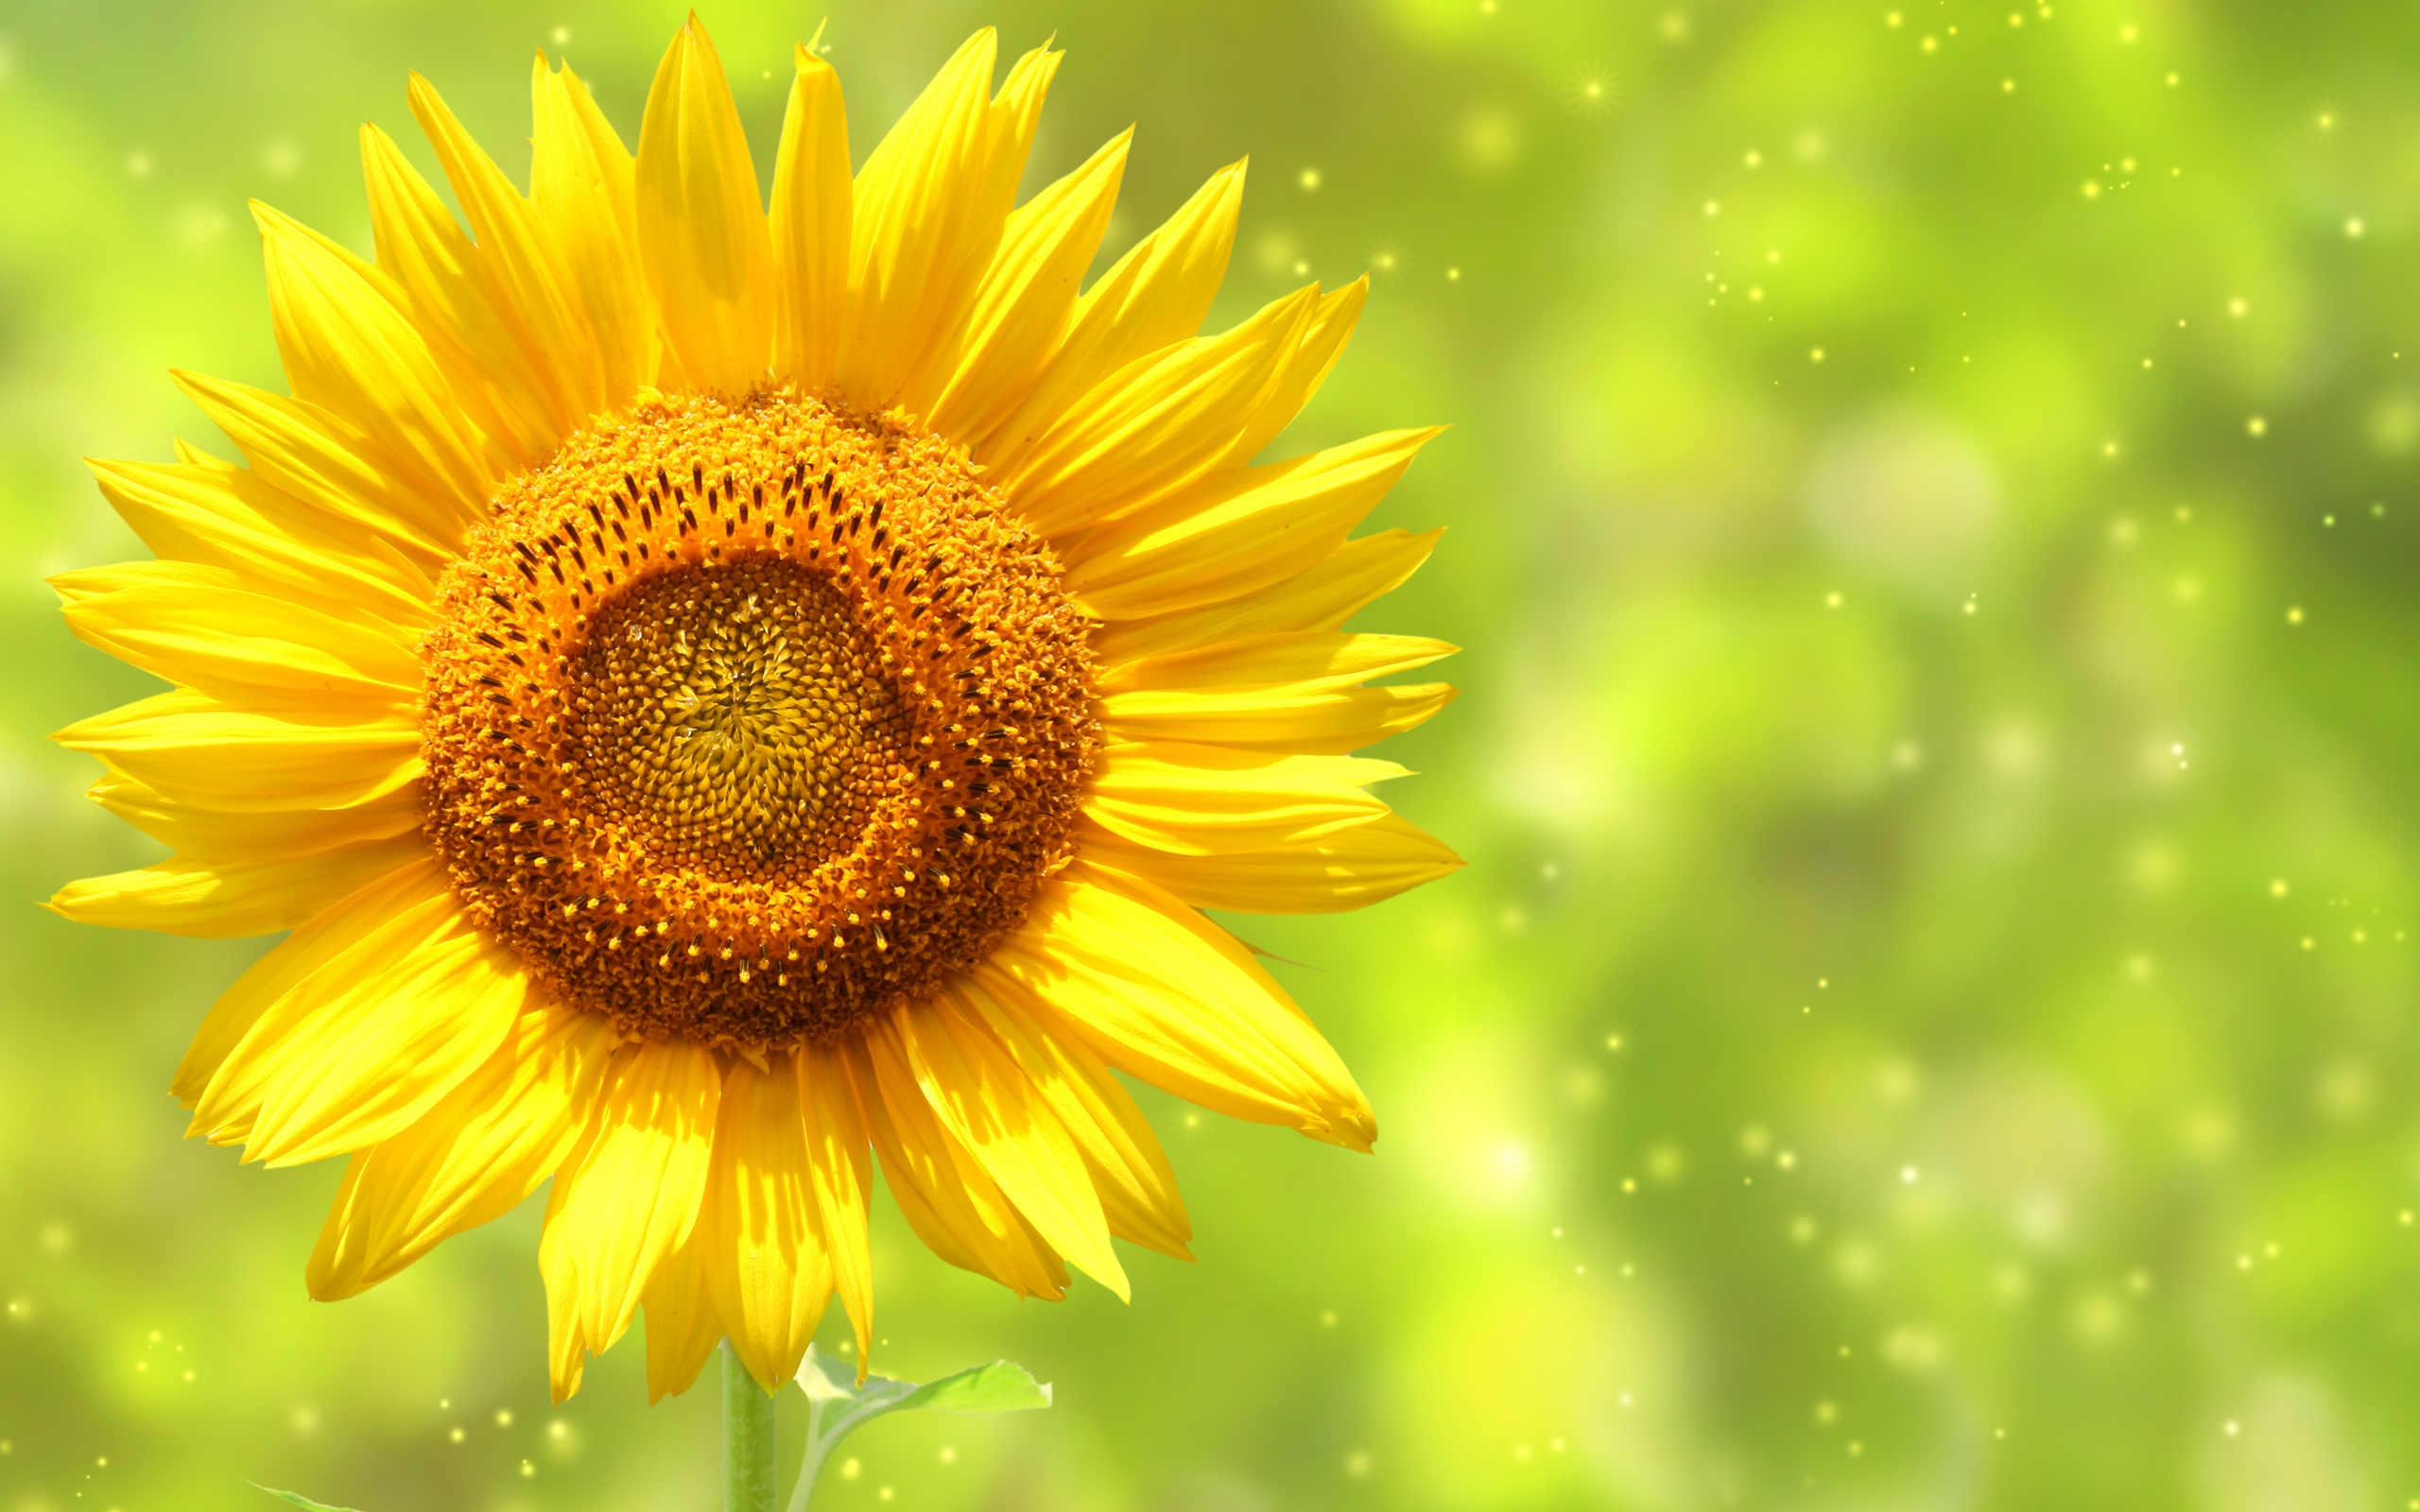 Sunflower clipart wallpaper Drawing Sunflower Pretty wallpaper Wallpaper